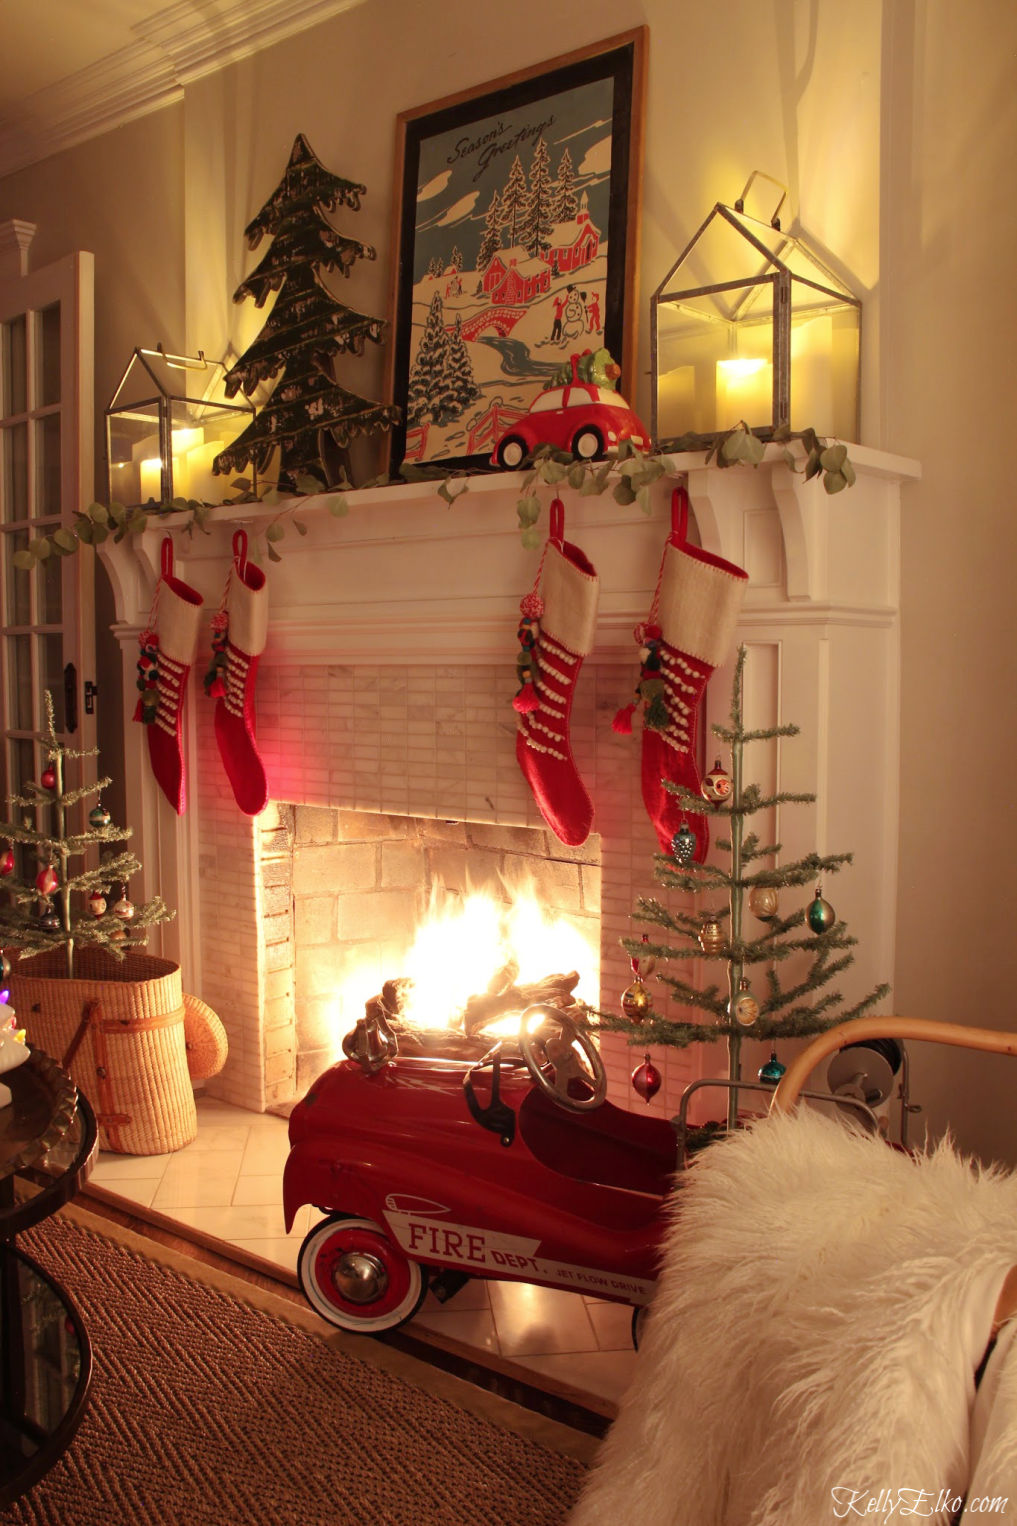 Beautiful Christmas Night Tour and love the roaring fire and festive red pedal car kellyelko.com #christmasdecor #christmasnightstour #christmasmantel #christmaslights #fireplace #roaringfire #vintagechristmas #farmhousechristmas #colorfulchristmas #kellyelko #christmasart #christmassgtockings #feathertrees